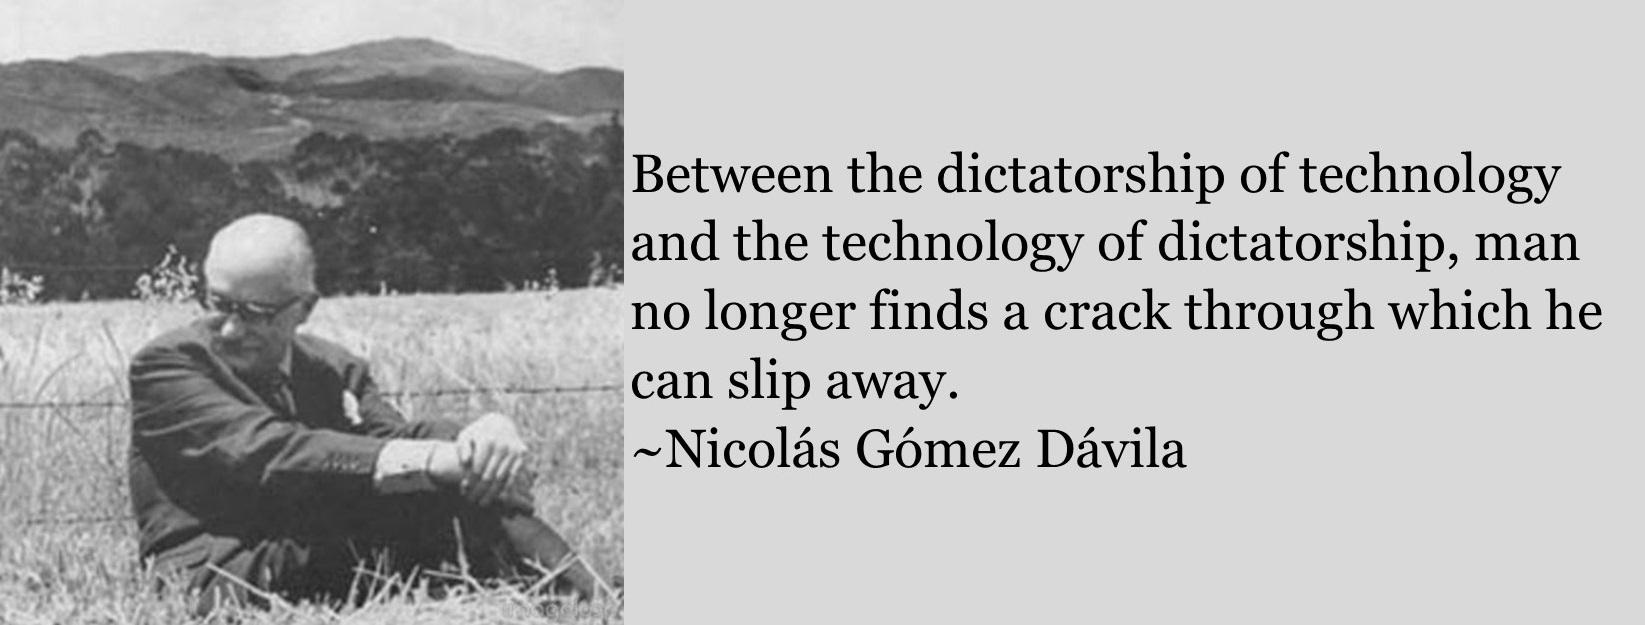 """Between the dictatorship of technology and the technology of dictatorship, man no longer finds a crack through which he can slip away."" ~Nicolás Gómez Dávila [OC] [1645 x 625]"